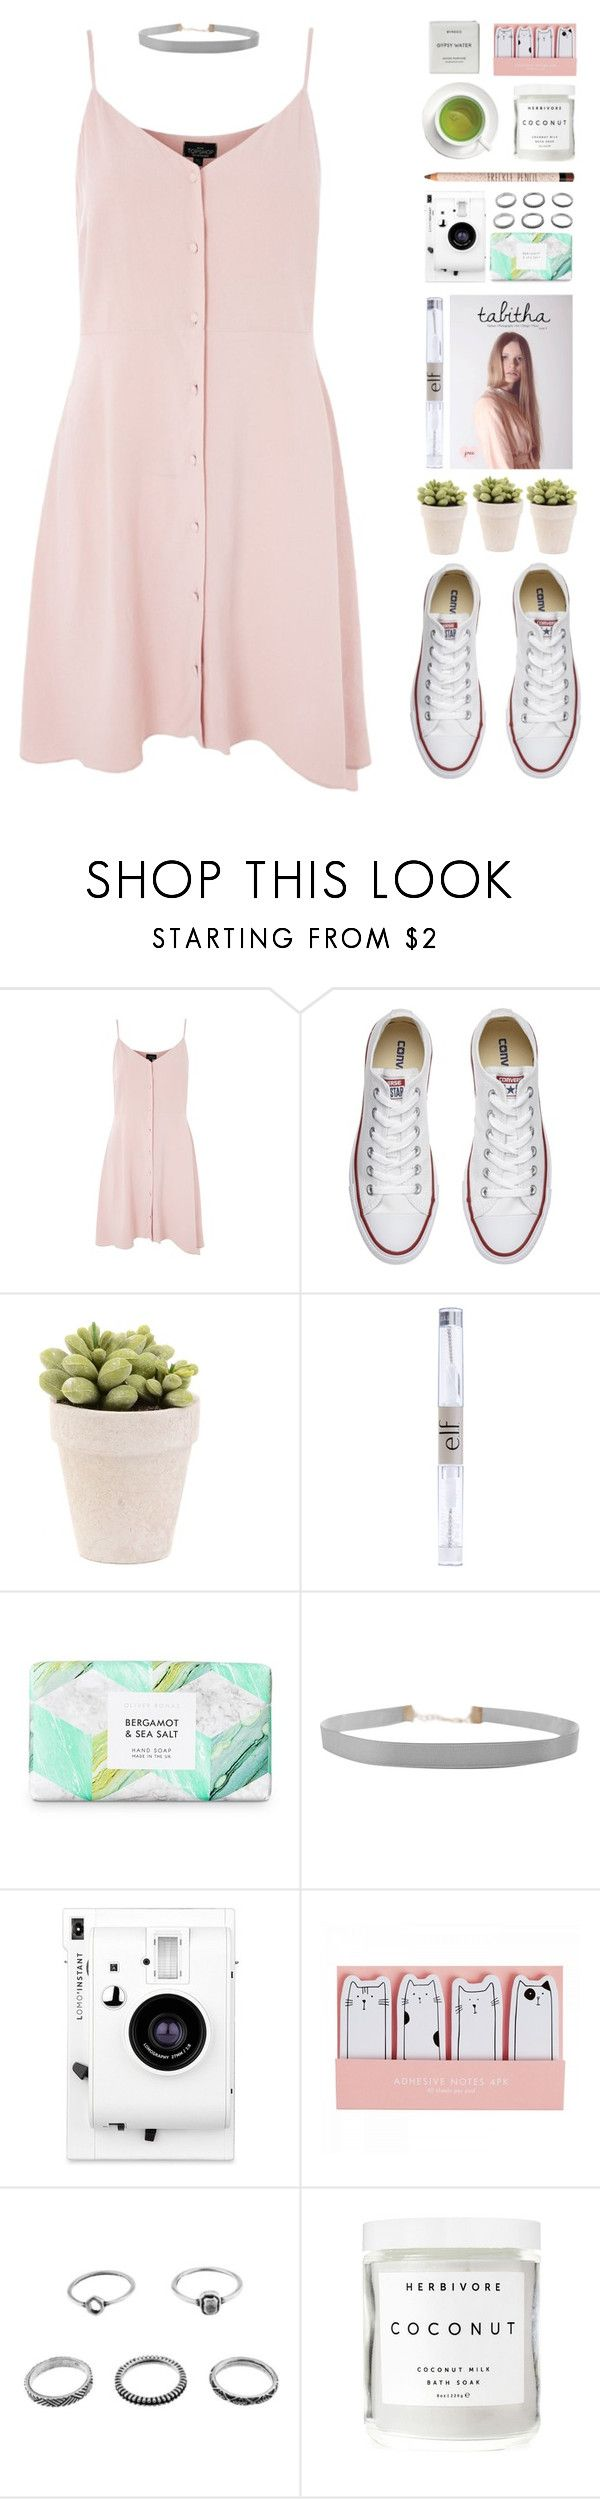 """Picnic in the Park"" by la-lunar-eclipse on Polyvore featuring Topshop, Converse, e.l.f., Humble Chic, Lomography, Herbivore and Byredo"